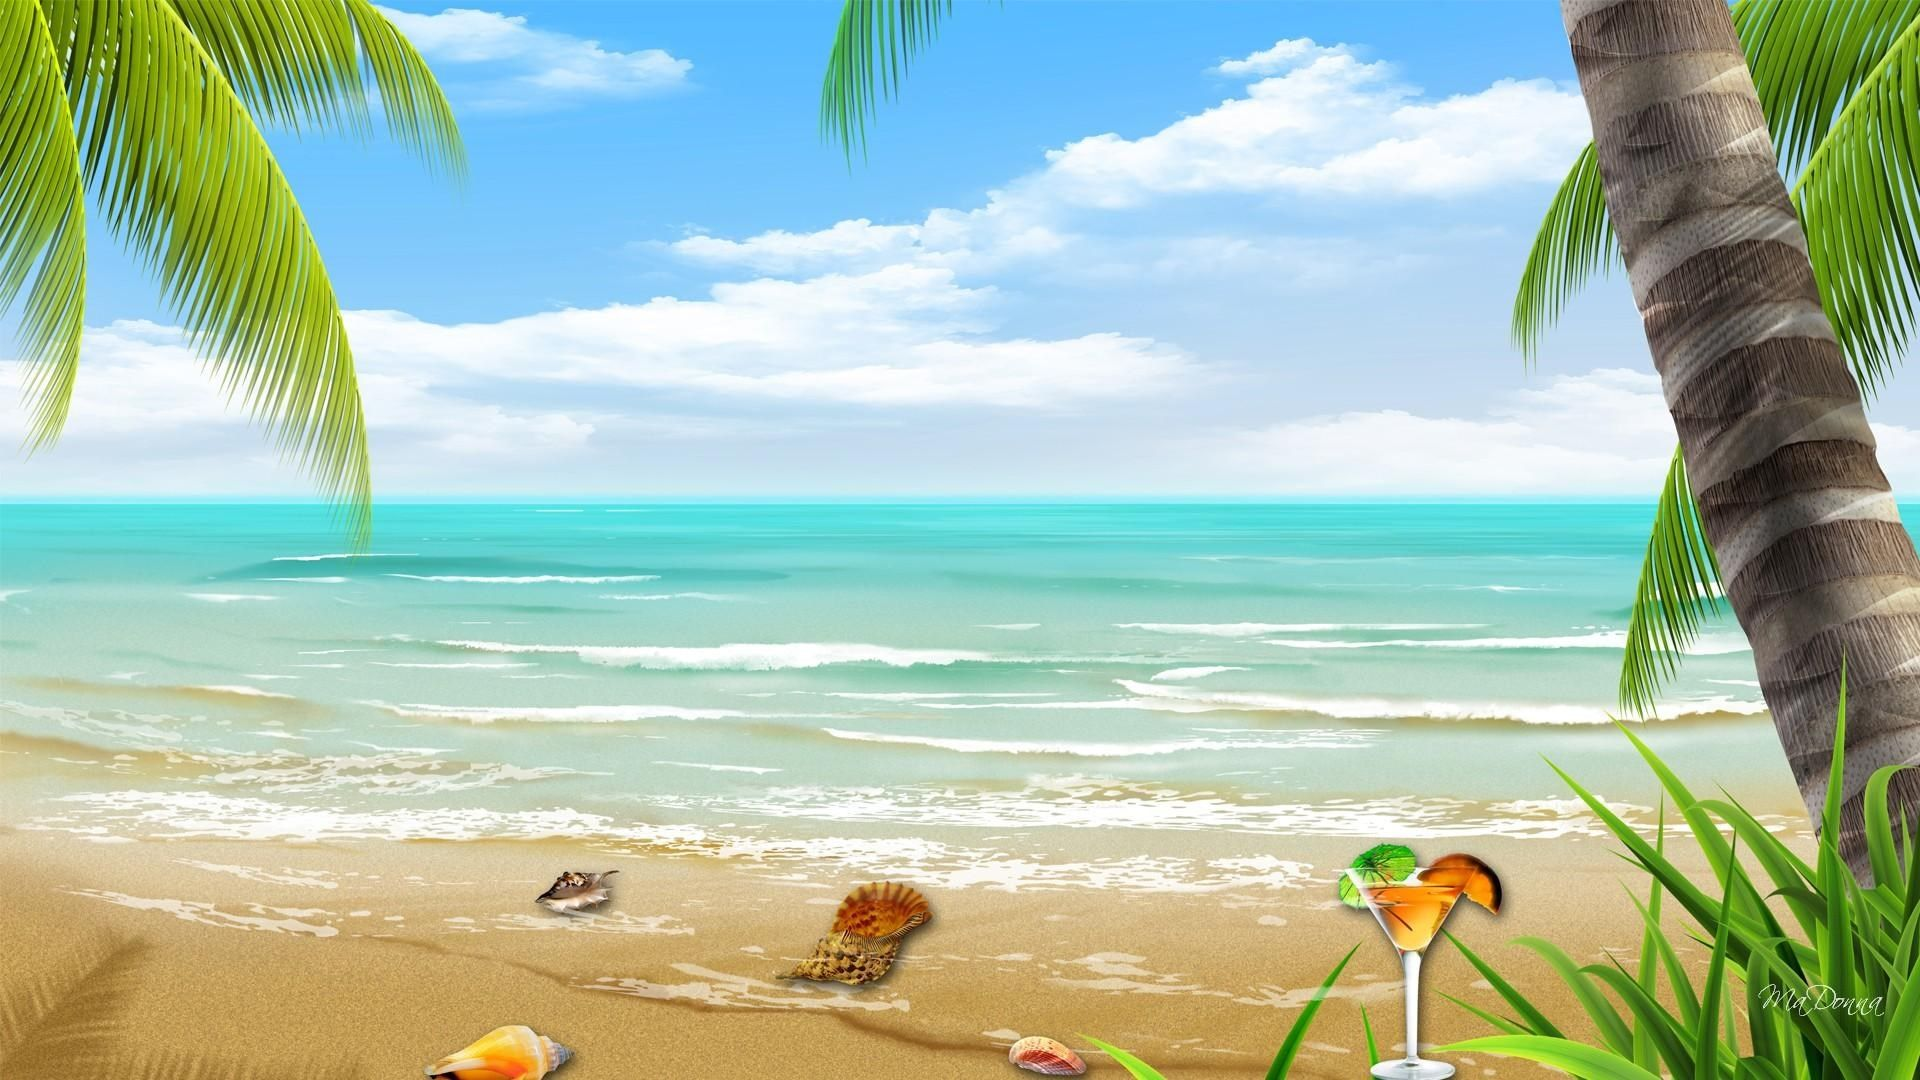 latest tropical beach backgrounds for desktop wallpaper pics best tropical beach sunset backgrounds of the world